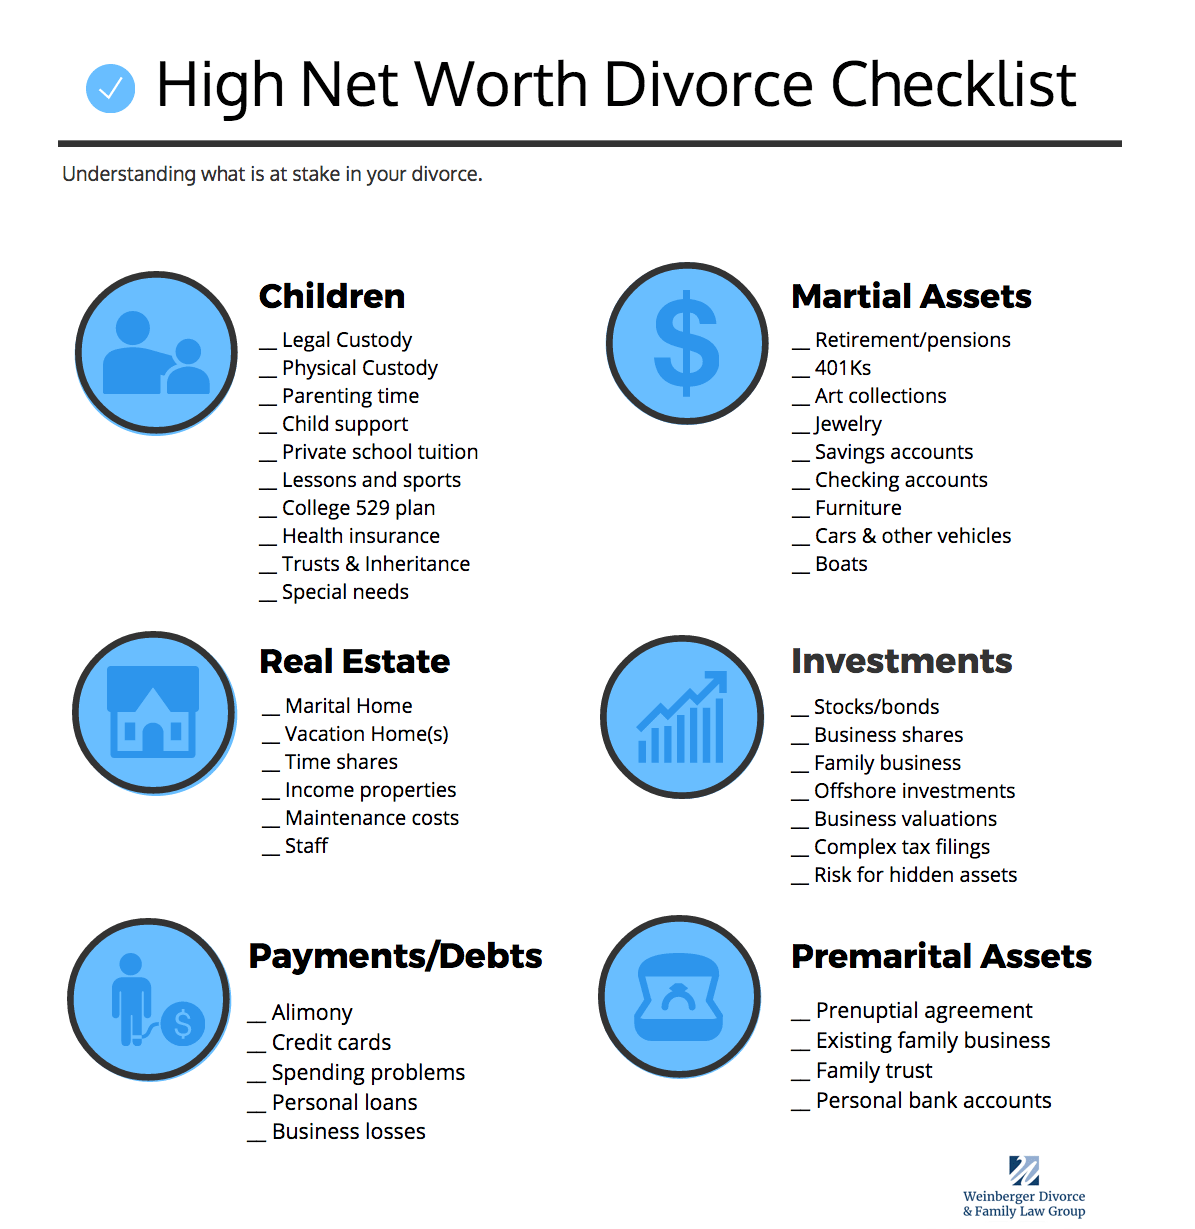 Your High Net Worth Divorce Checklist